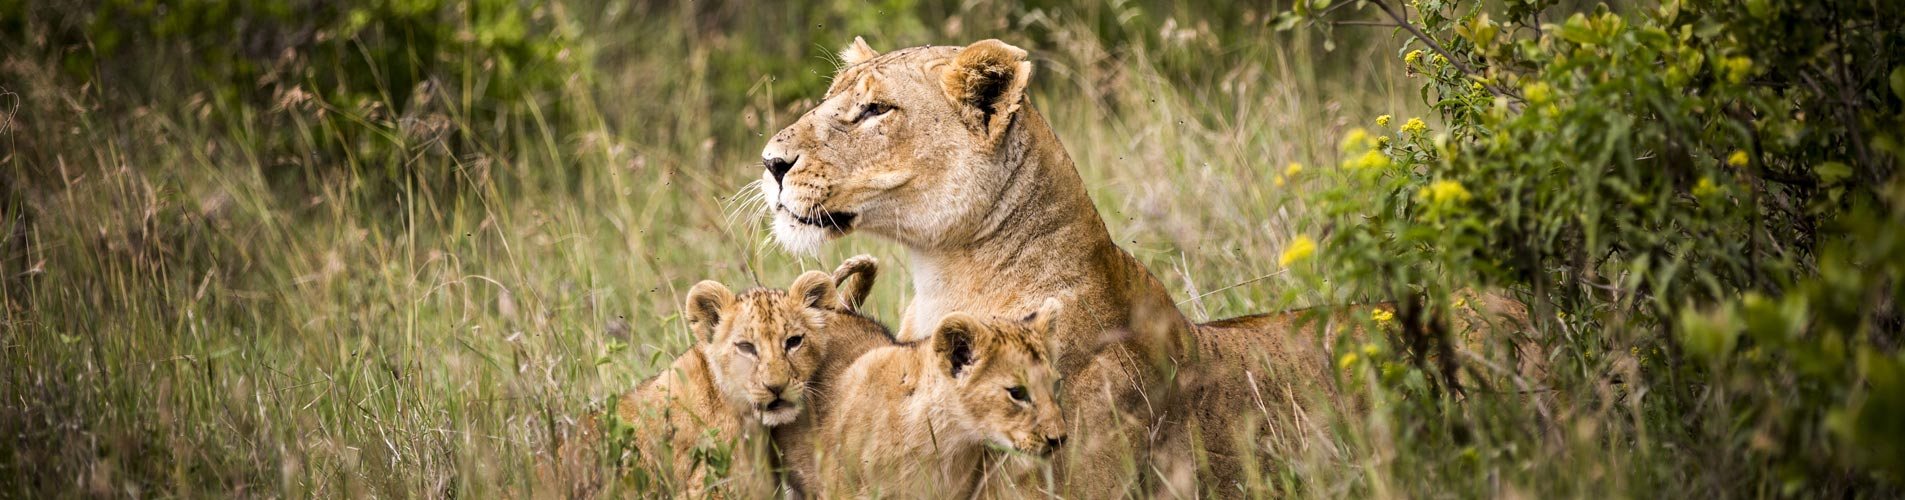 Lioness And Cubs At Segera in Kenya